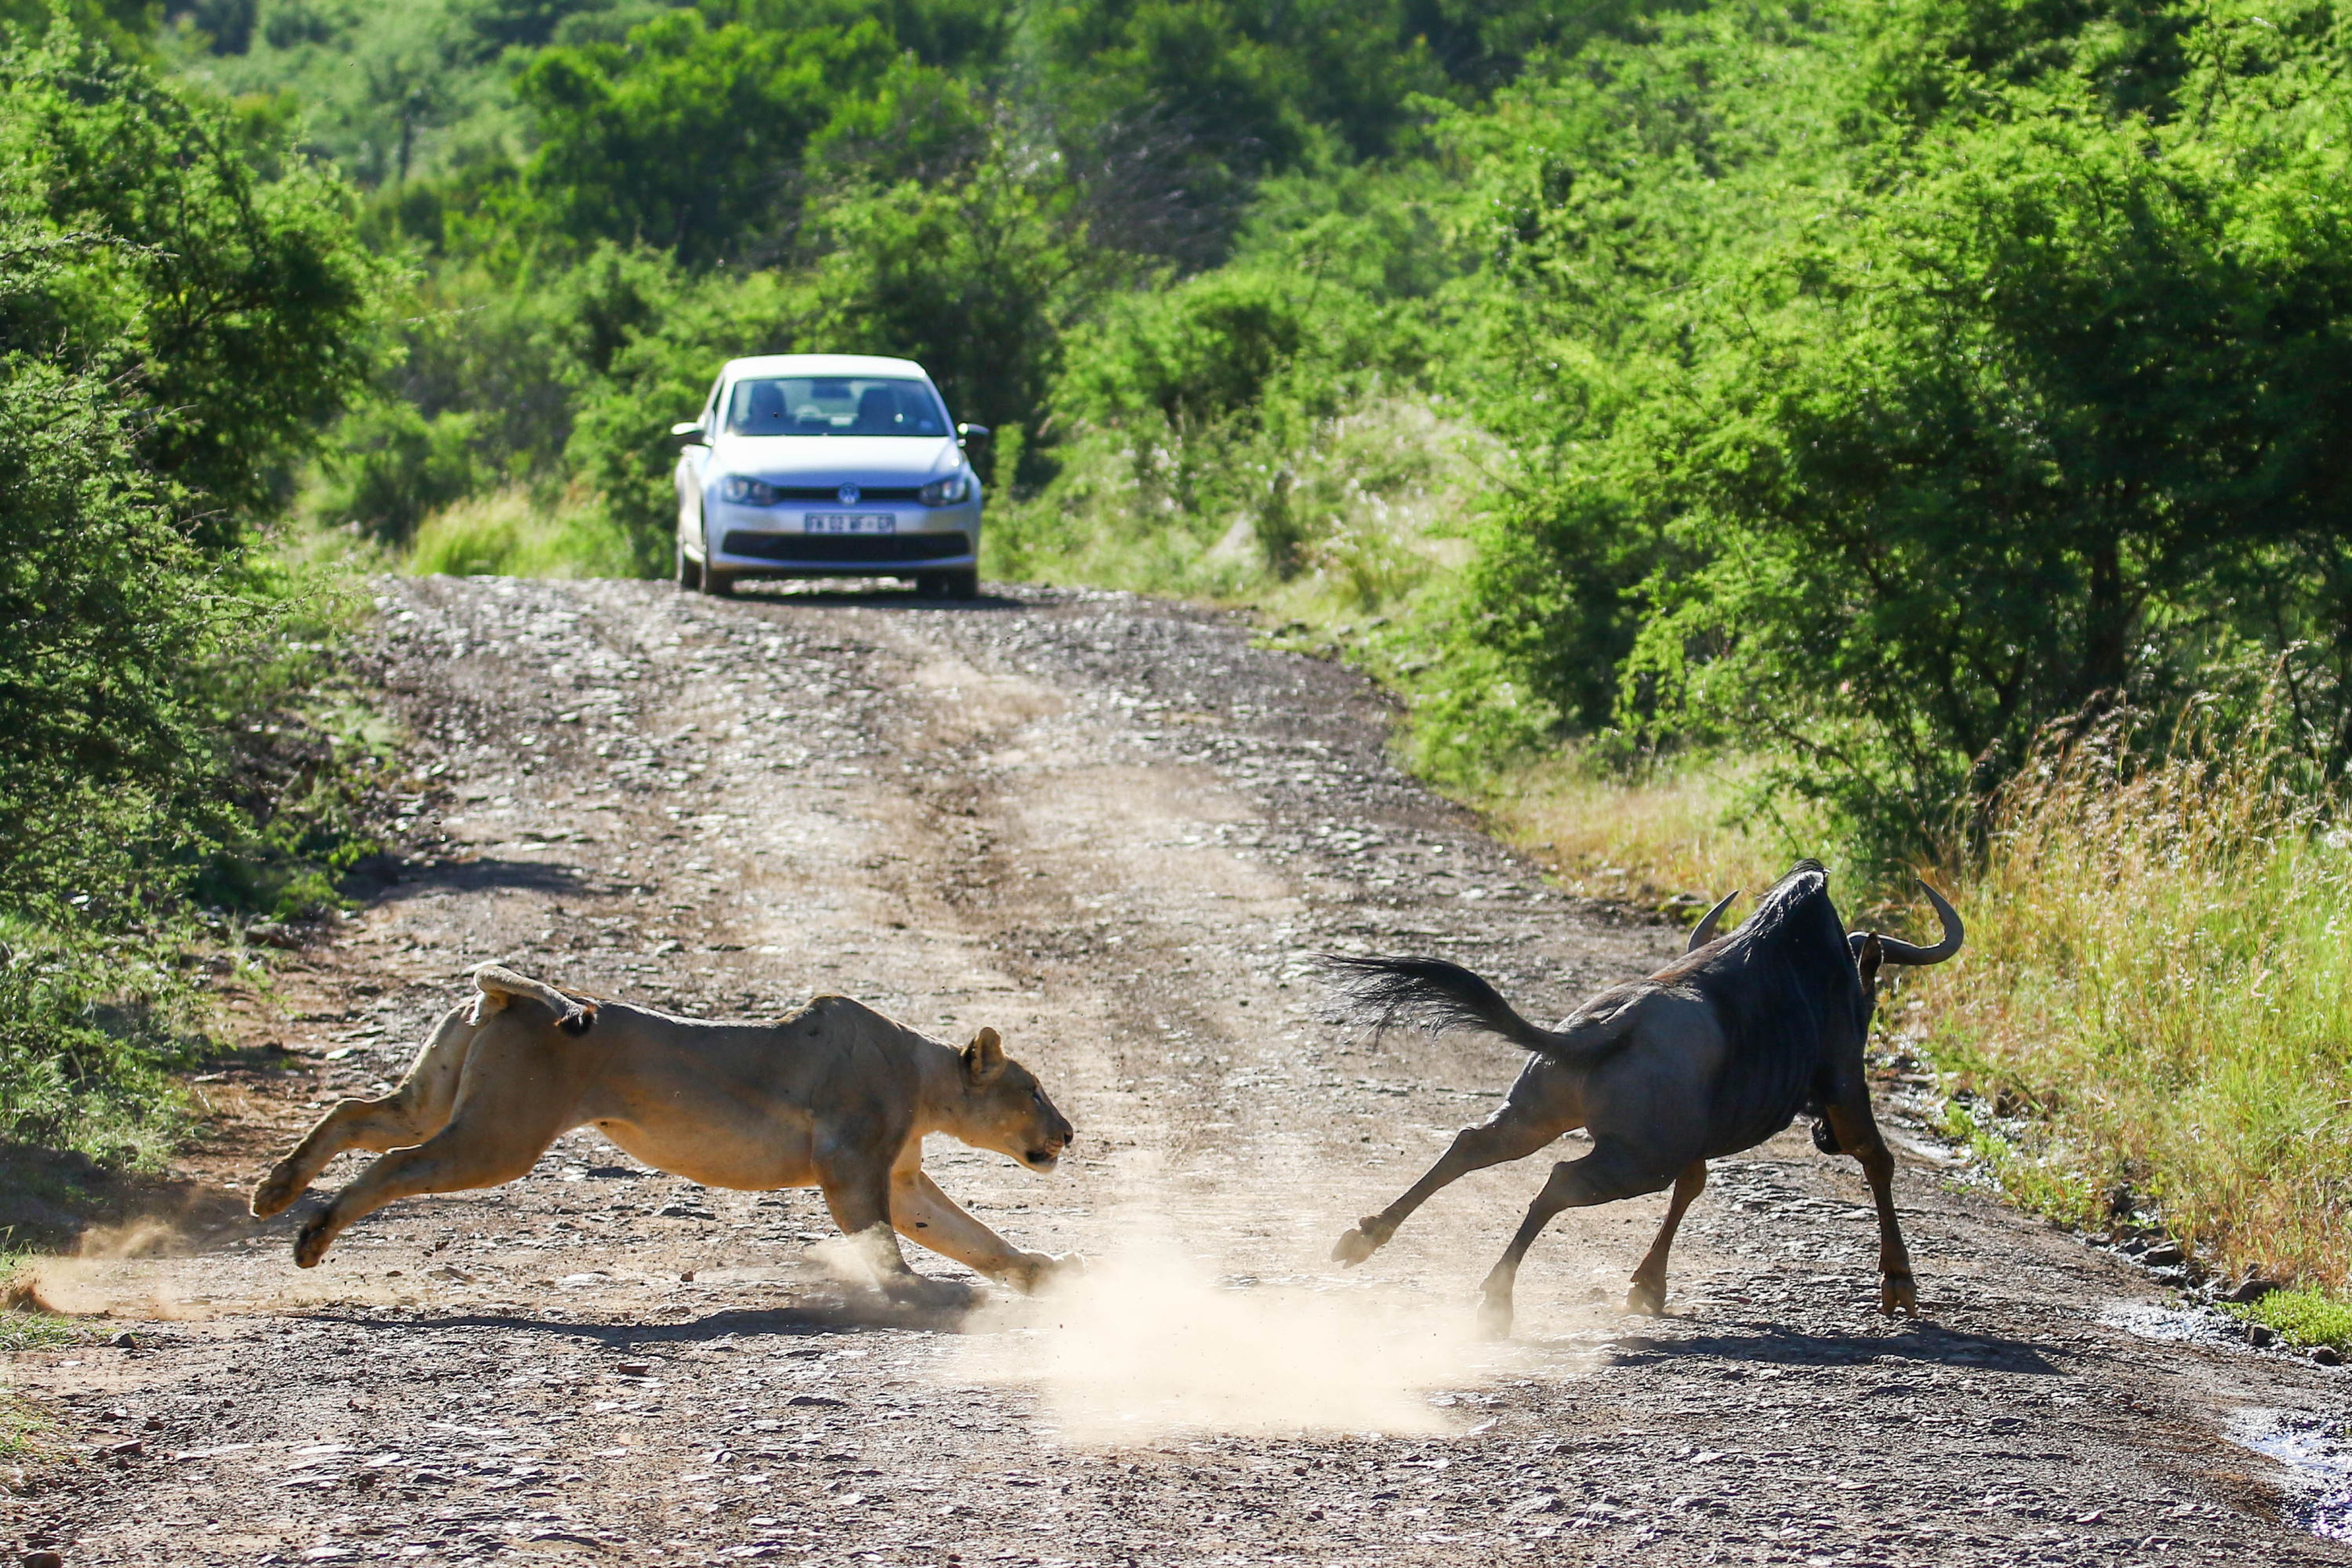 Lion hunting wildebeest - frame 1 (Photo by Derek Ho)